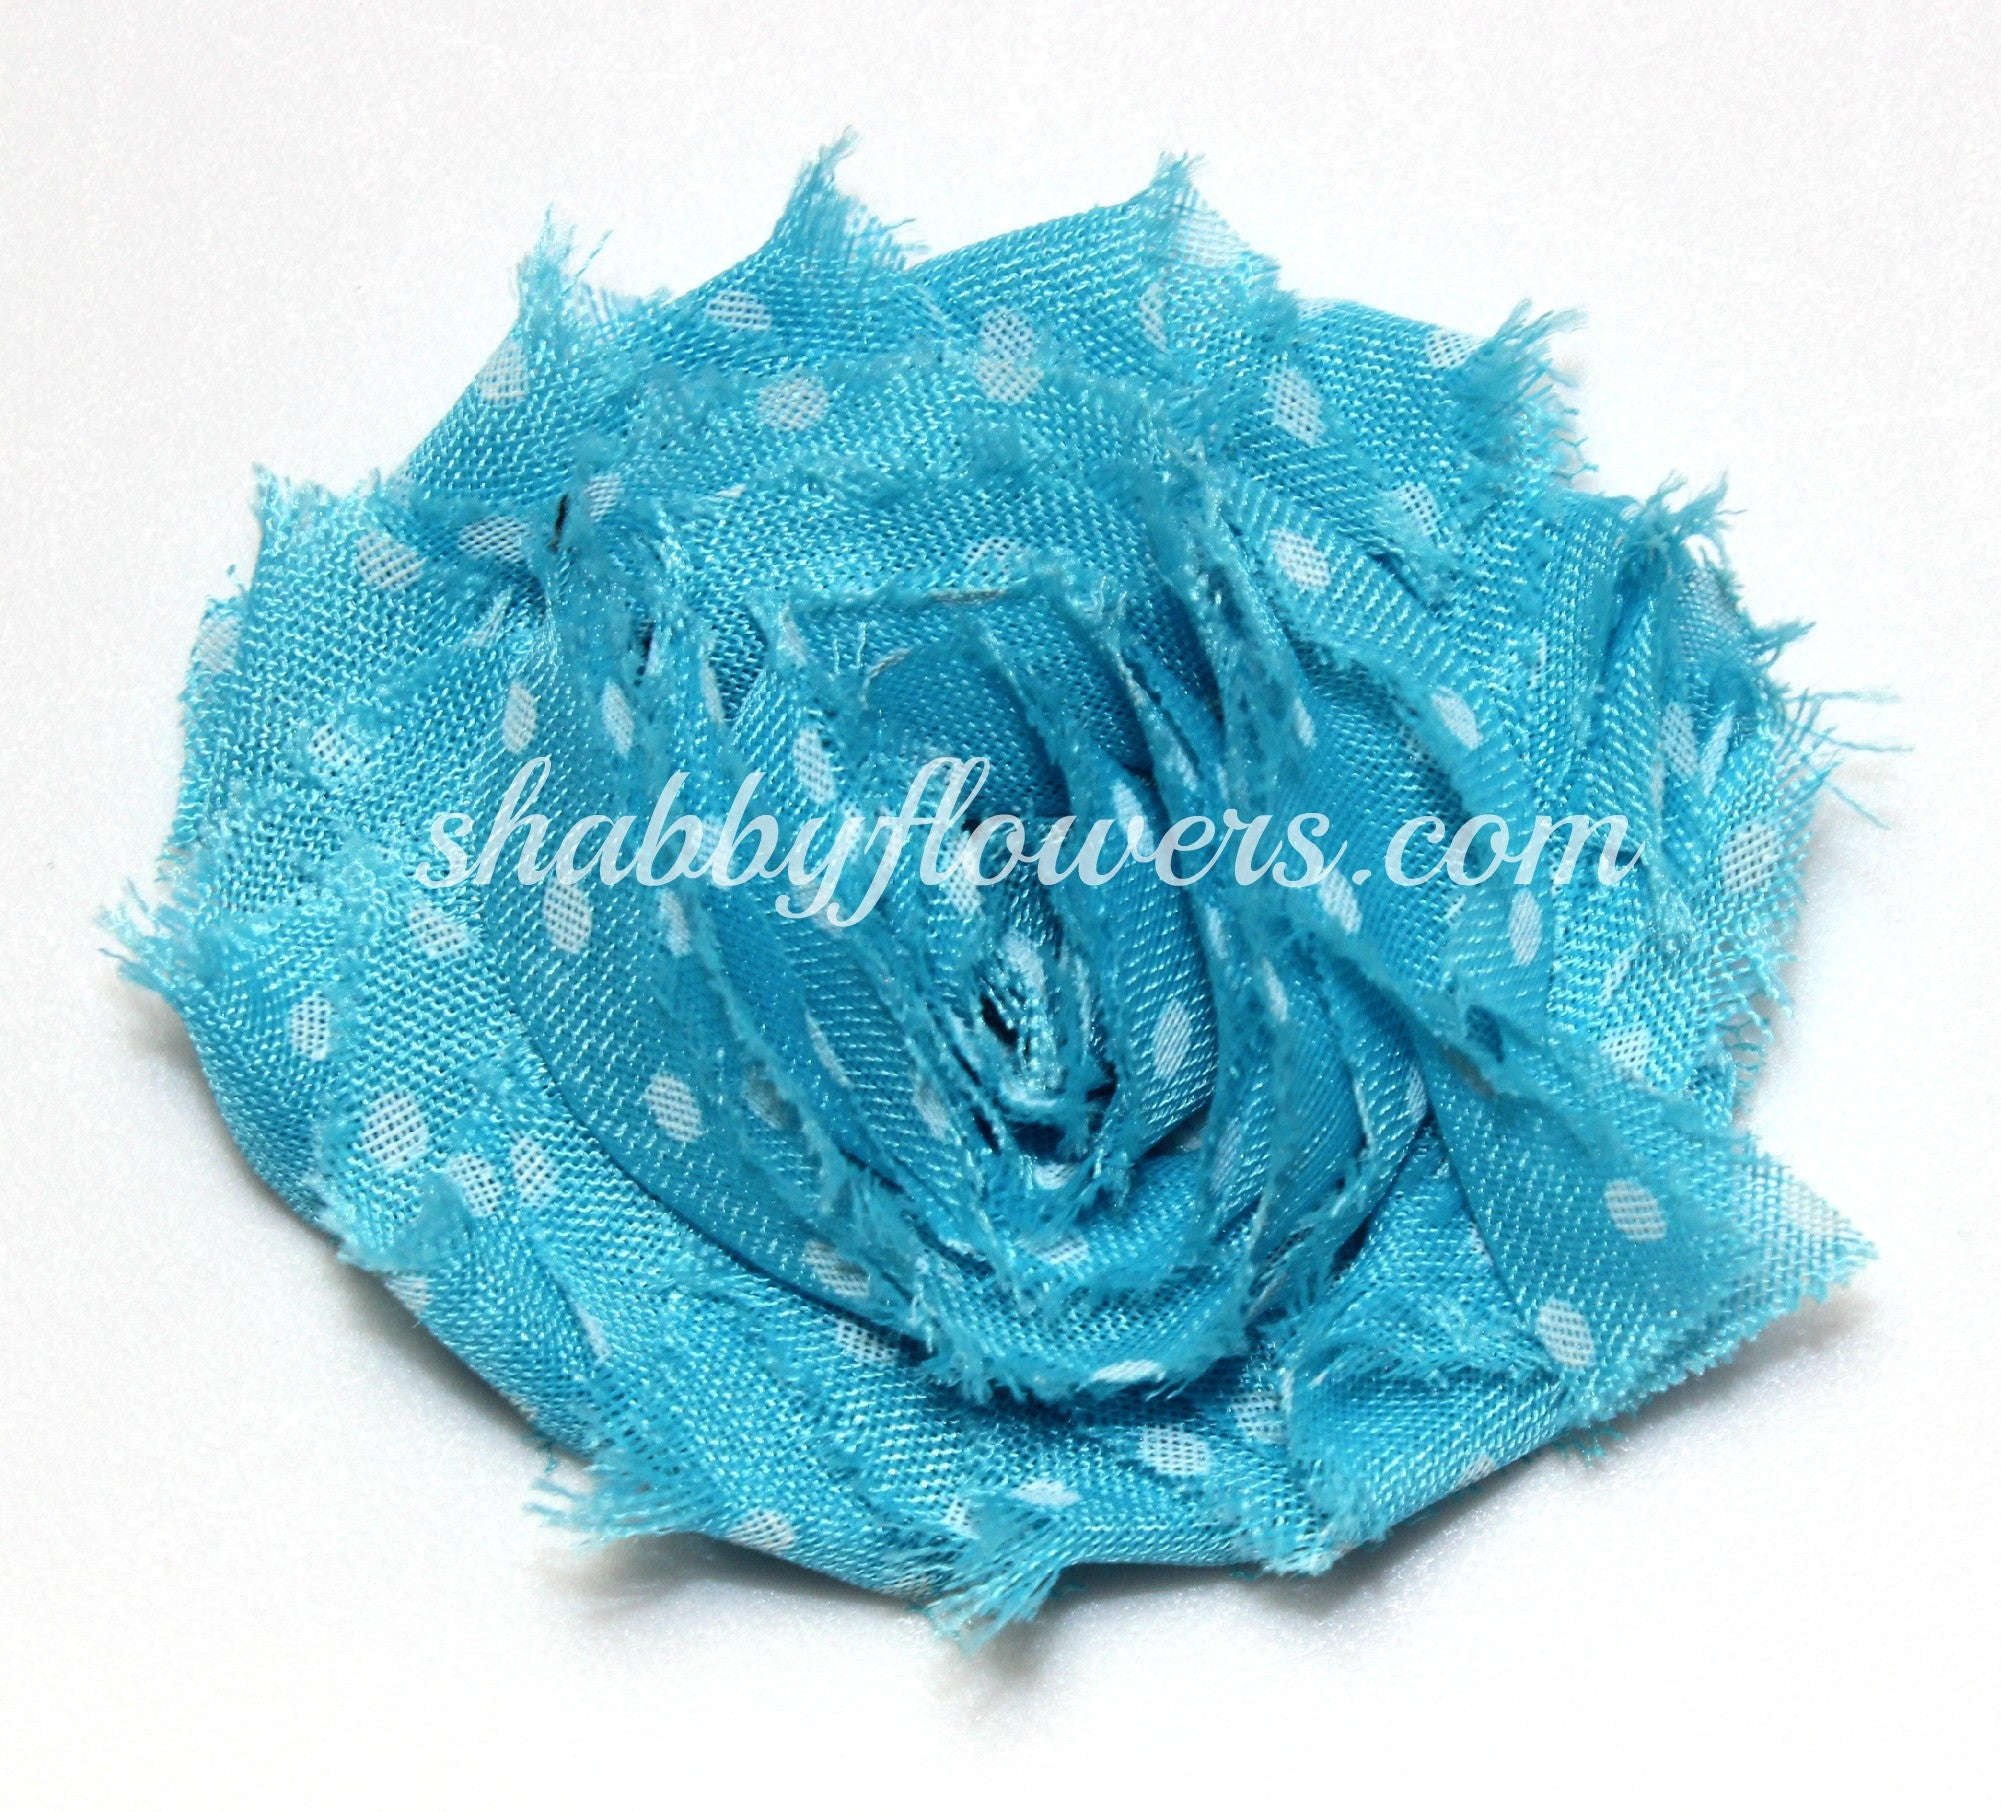 Shabby Chiffon Flower- Blue with White Dots - shabbyflowers.com